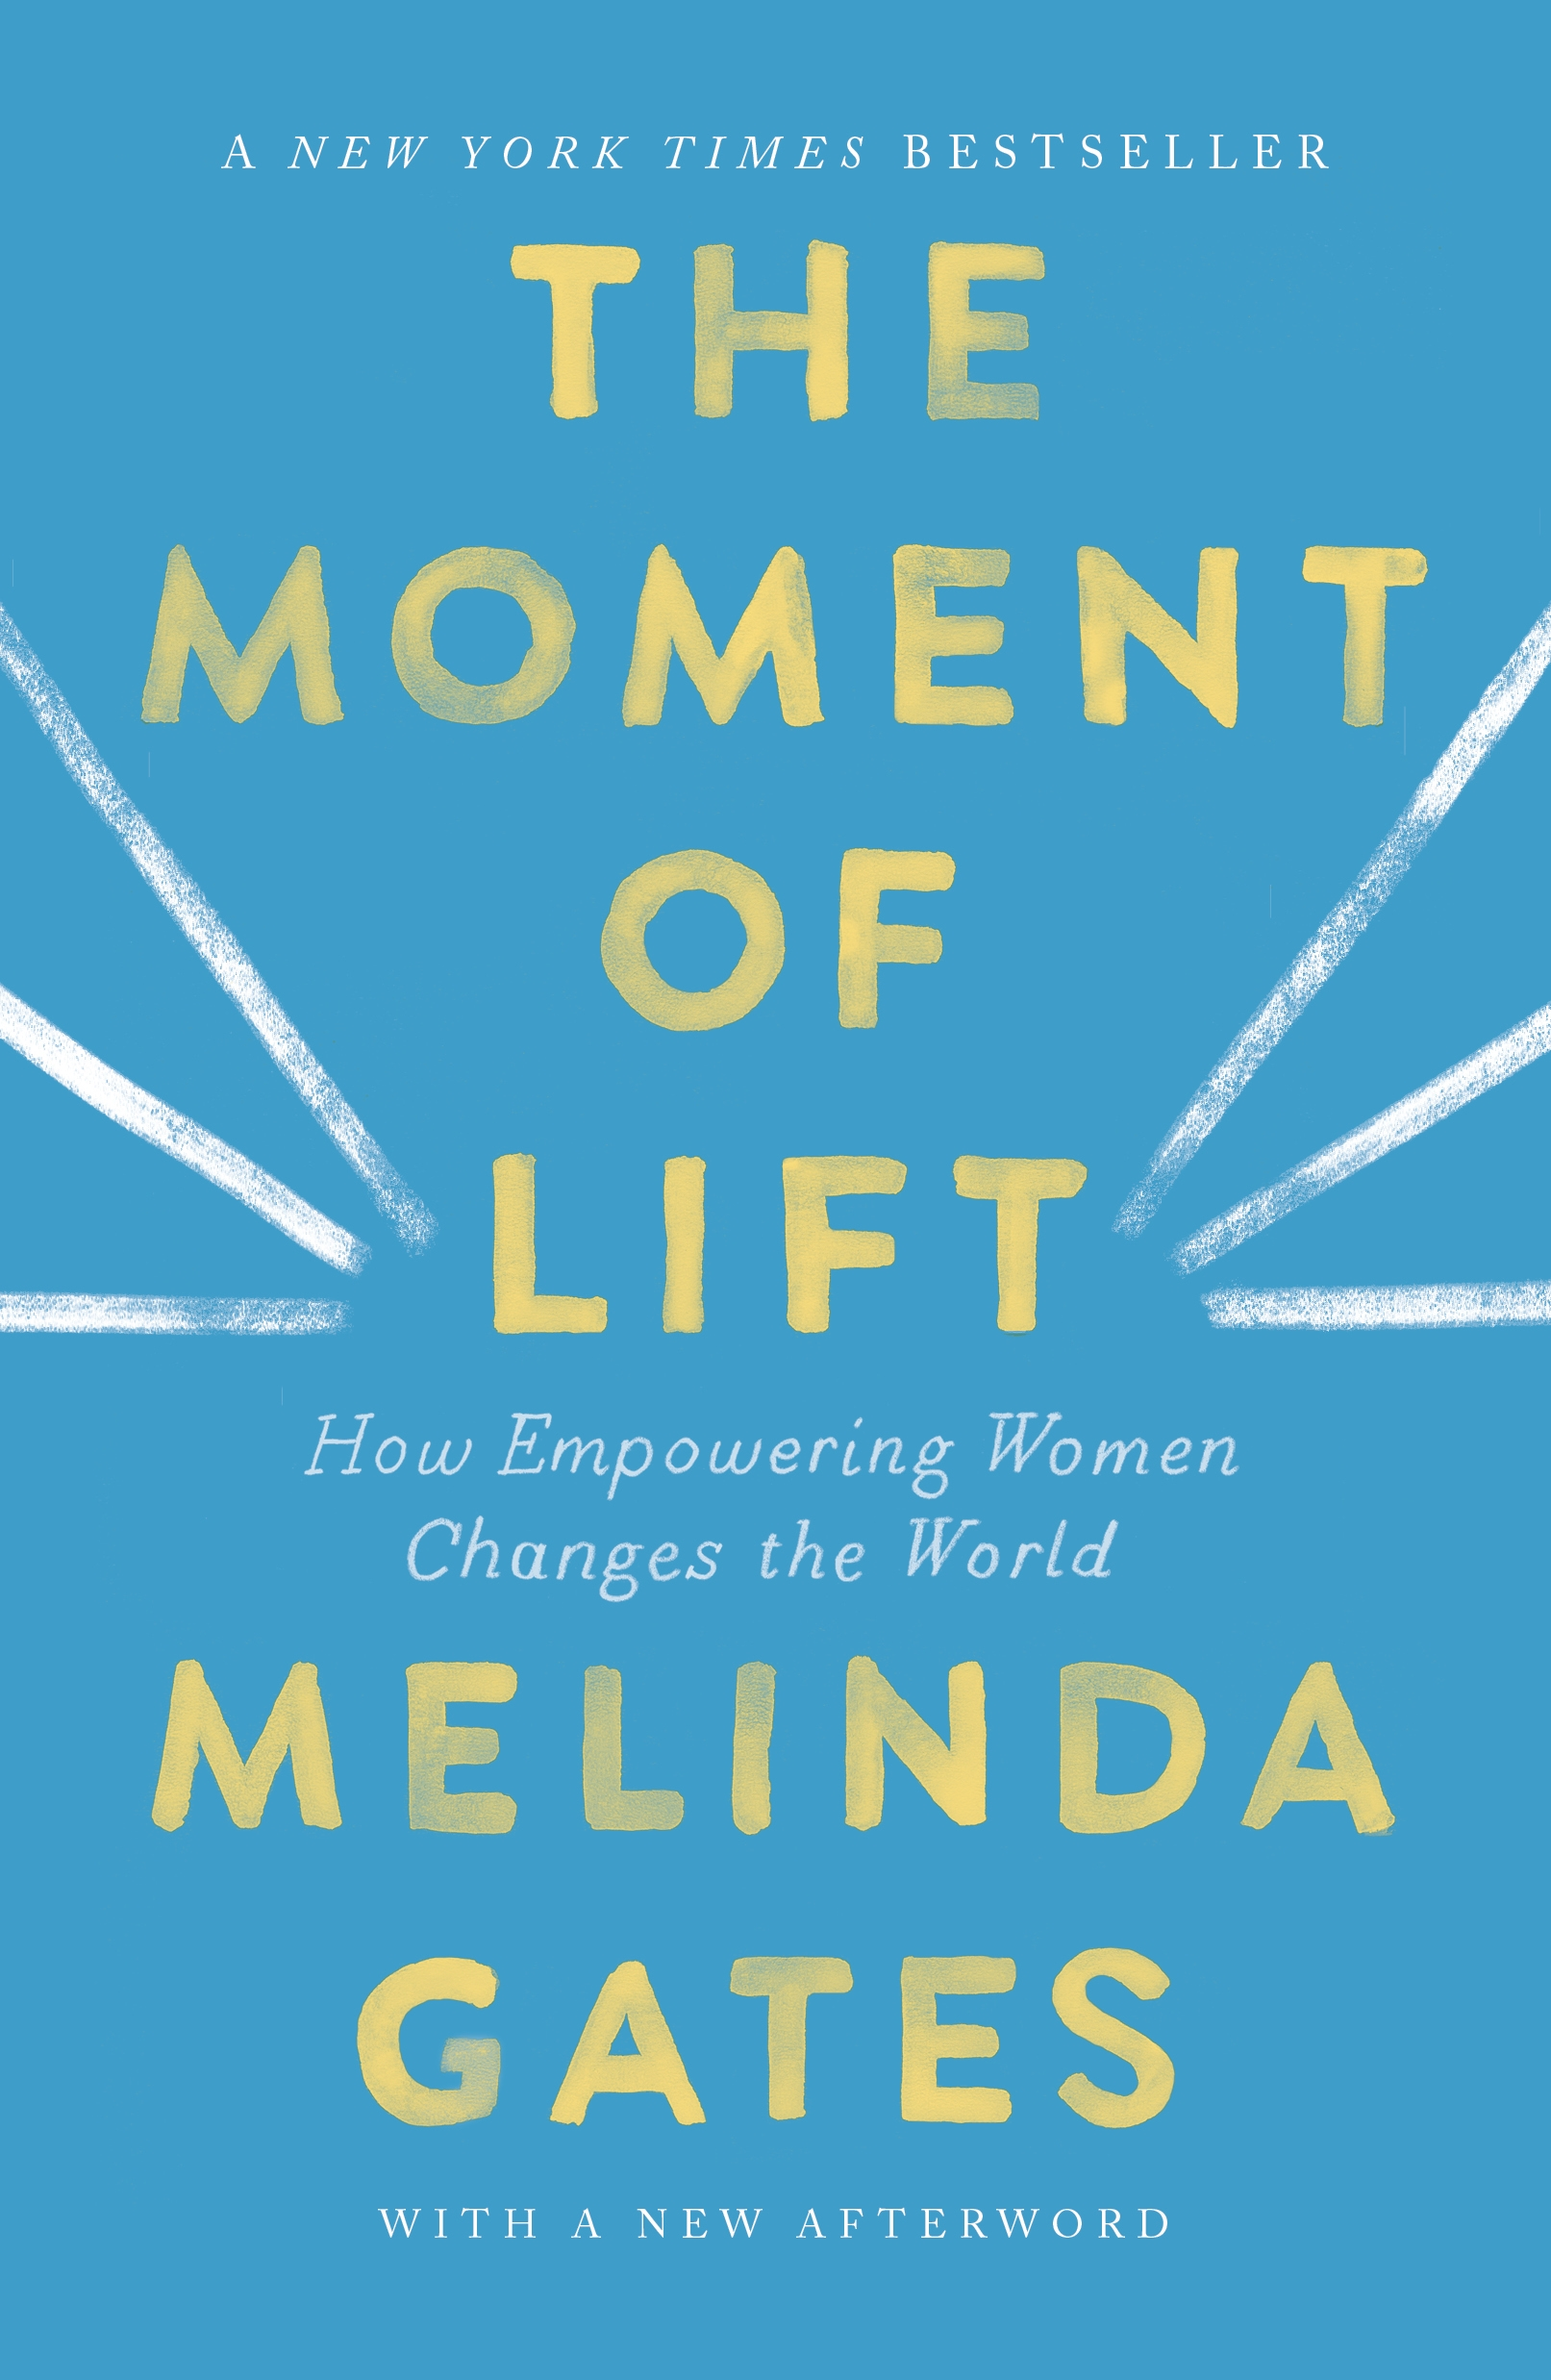 The moment of lift how empowering women changes the world cover image